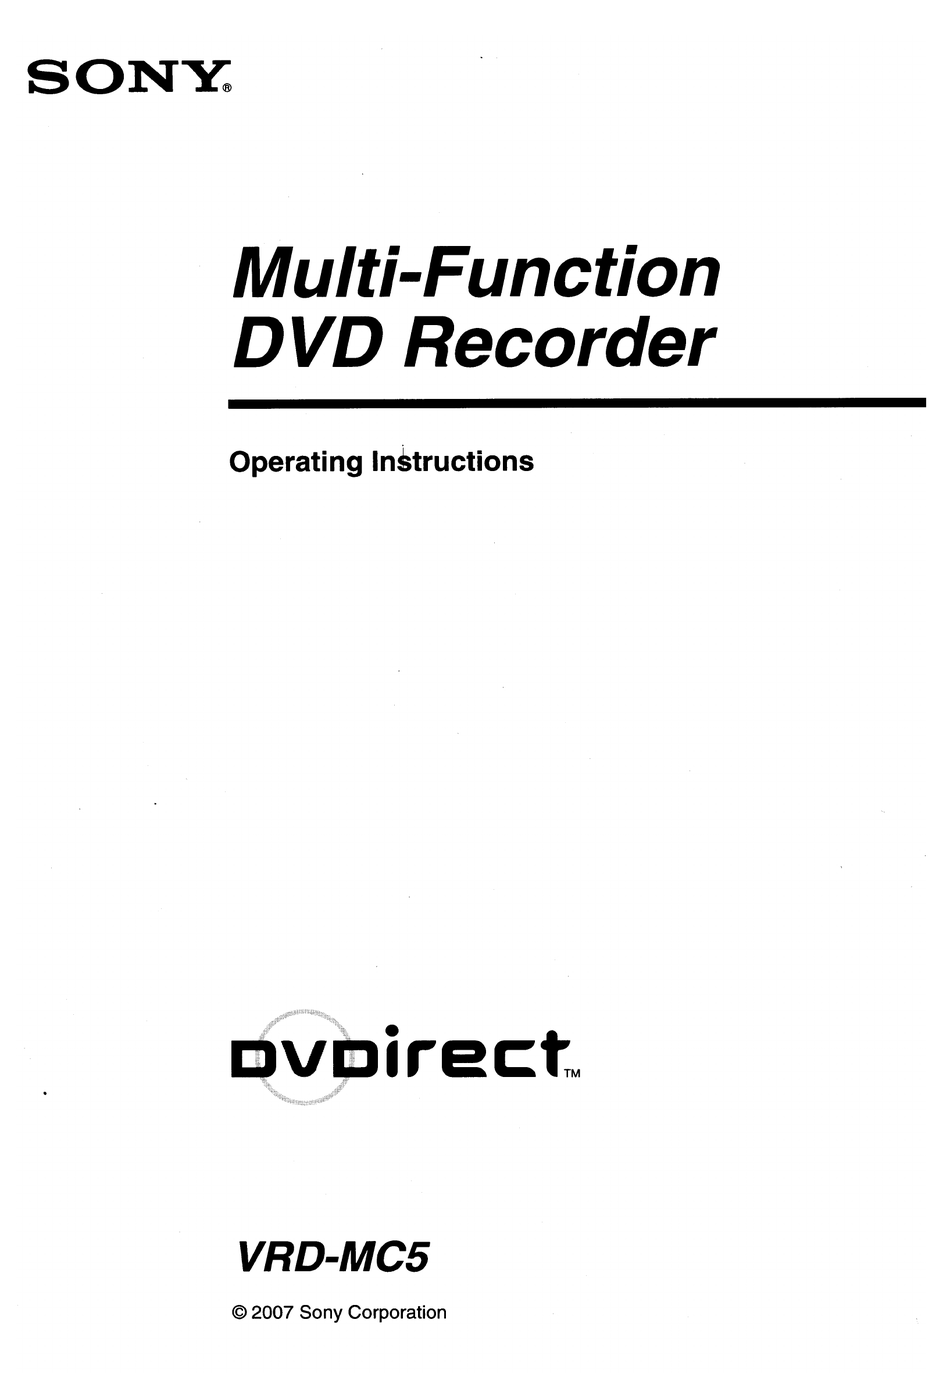 SONY DVDIRECT VRD-MC5 OPERATING INSTRUCTIONS MANUAL Pdf